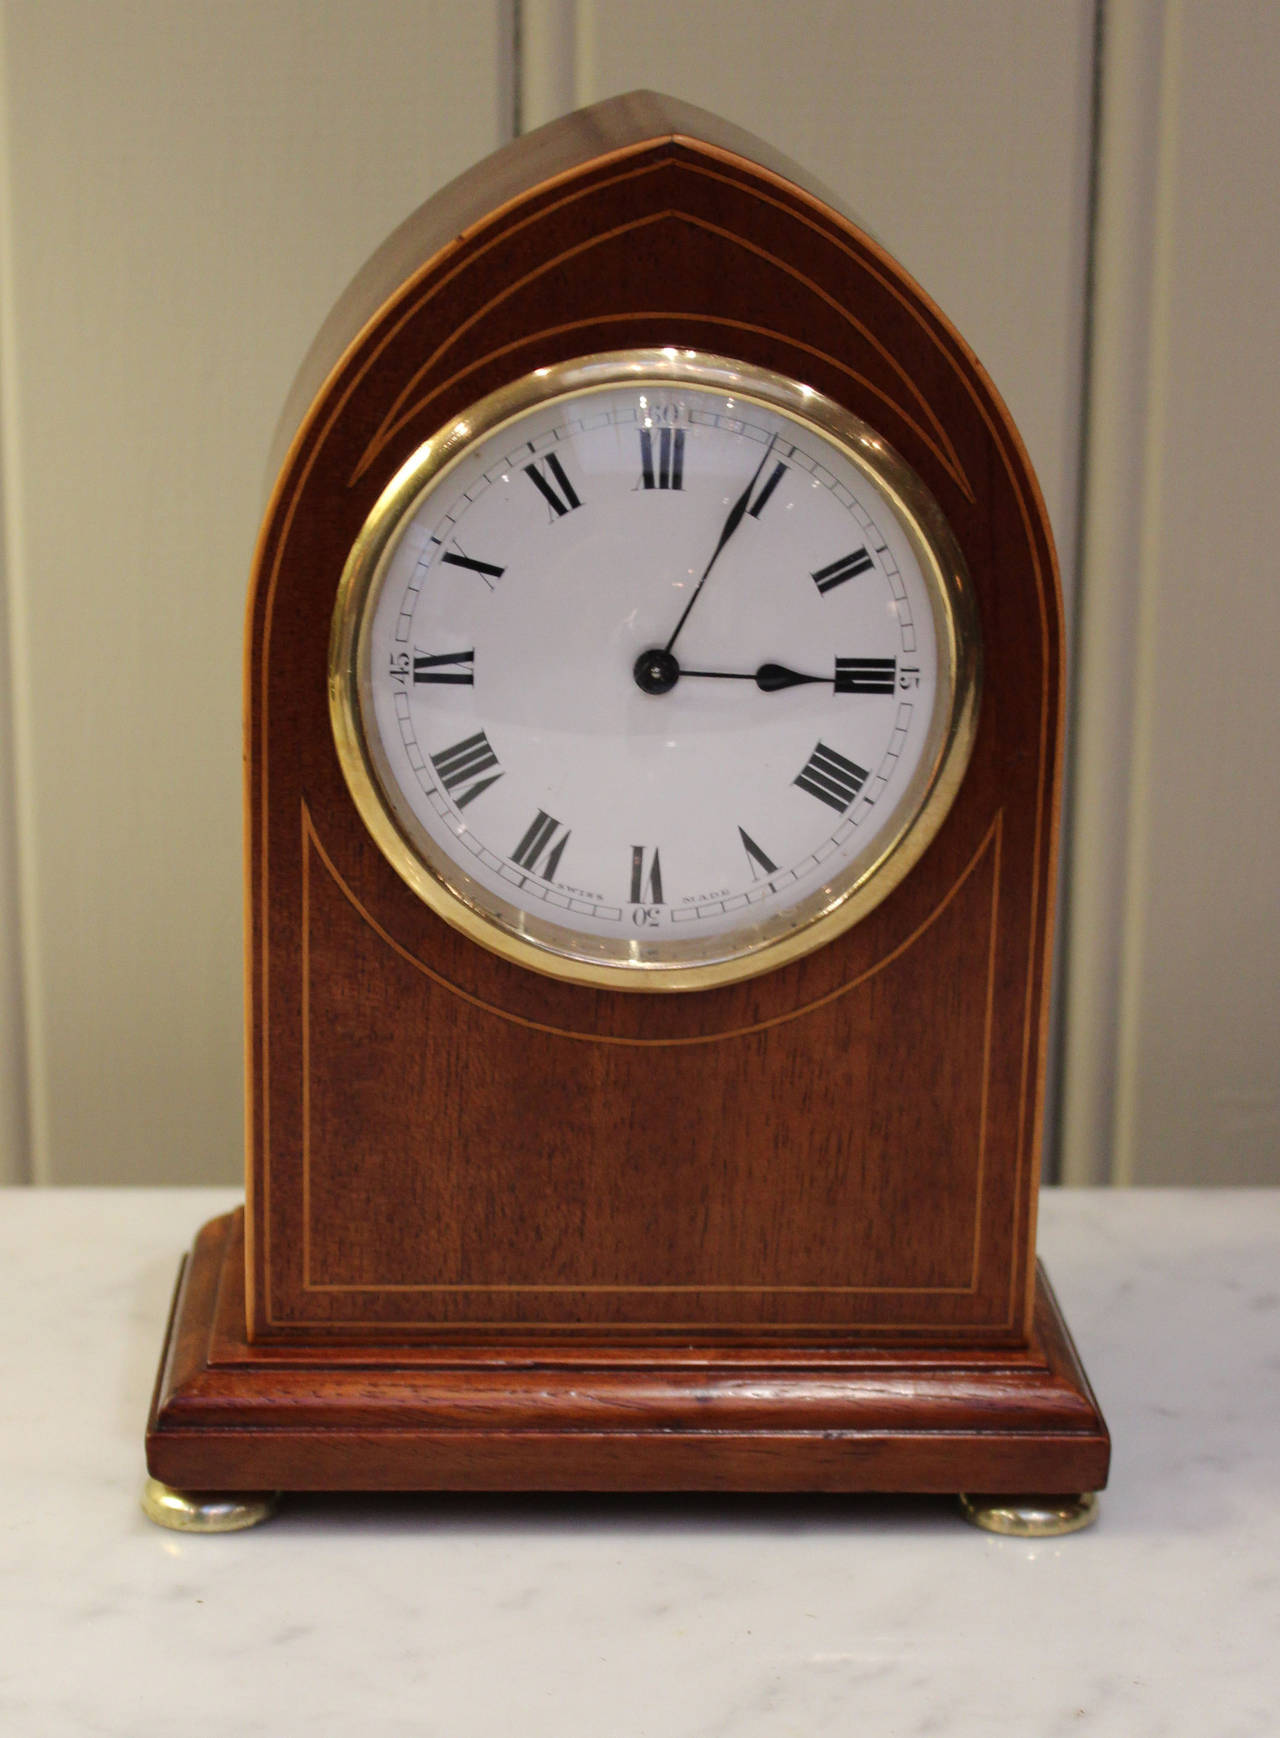 Bulova Mantel Clock | Clocks for Fireplace Mantel | Vintage Bulova Wall Clock